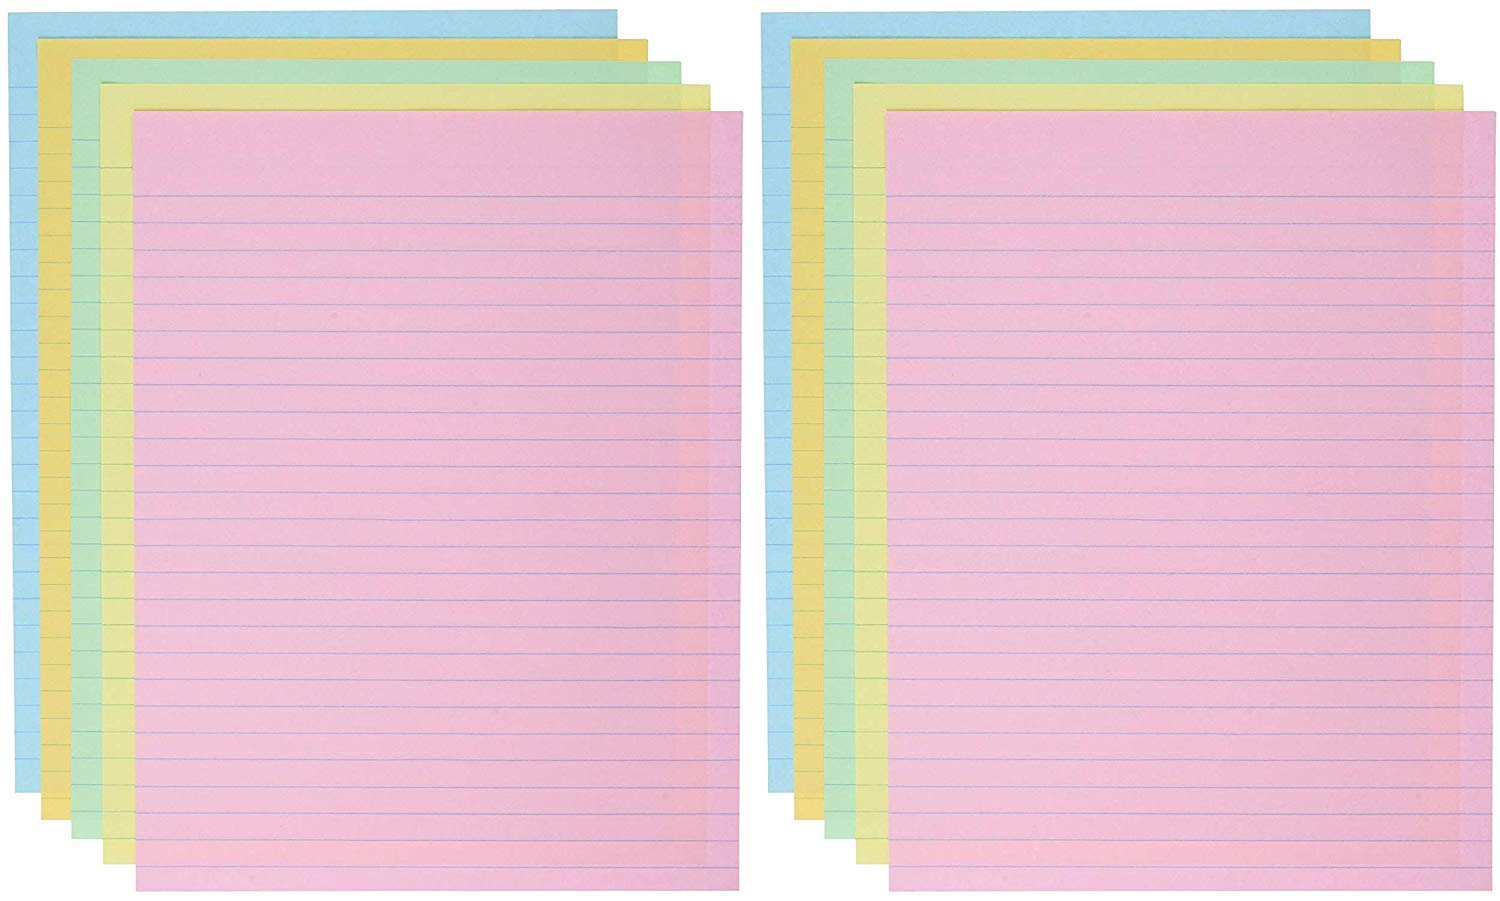 School Smart Ruled Exhibit Paper, 8-1/2 x 11 Inches, Assorted Colors, 500 Sheets (Pack of 2)